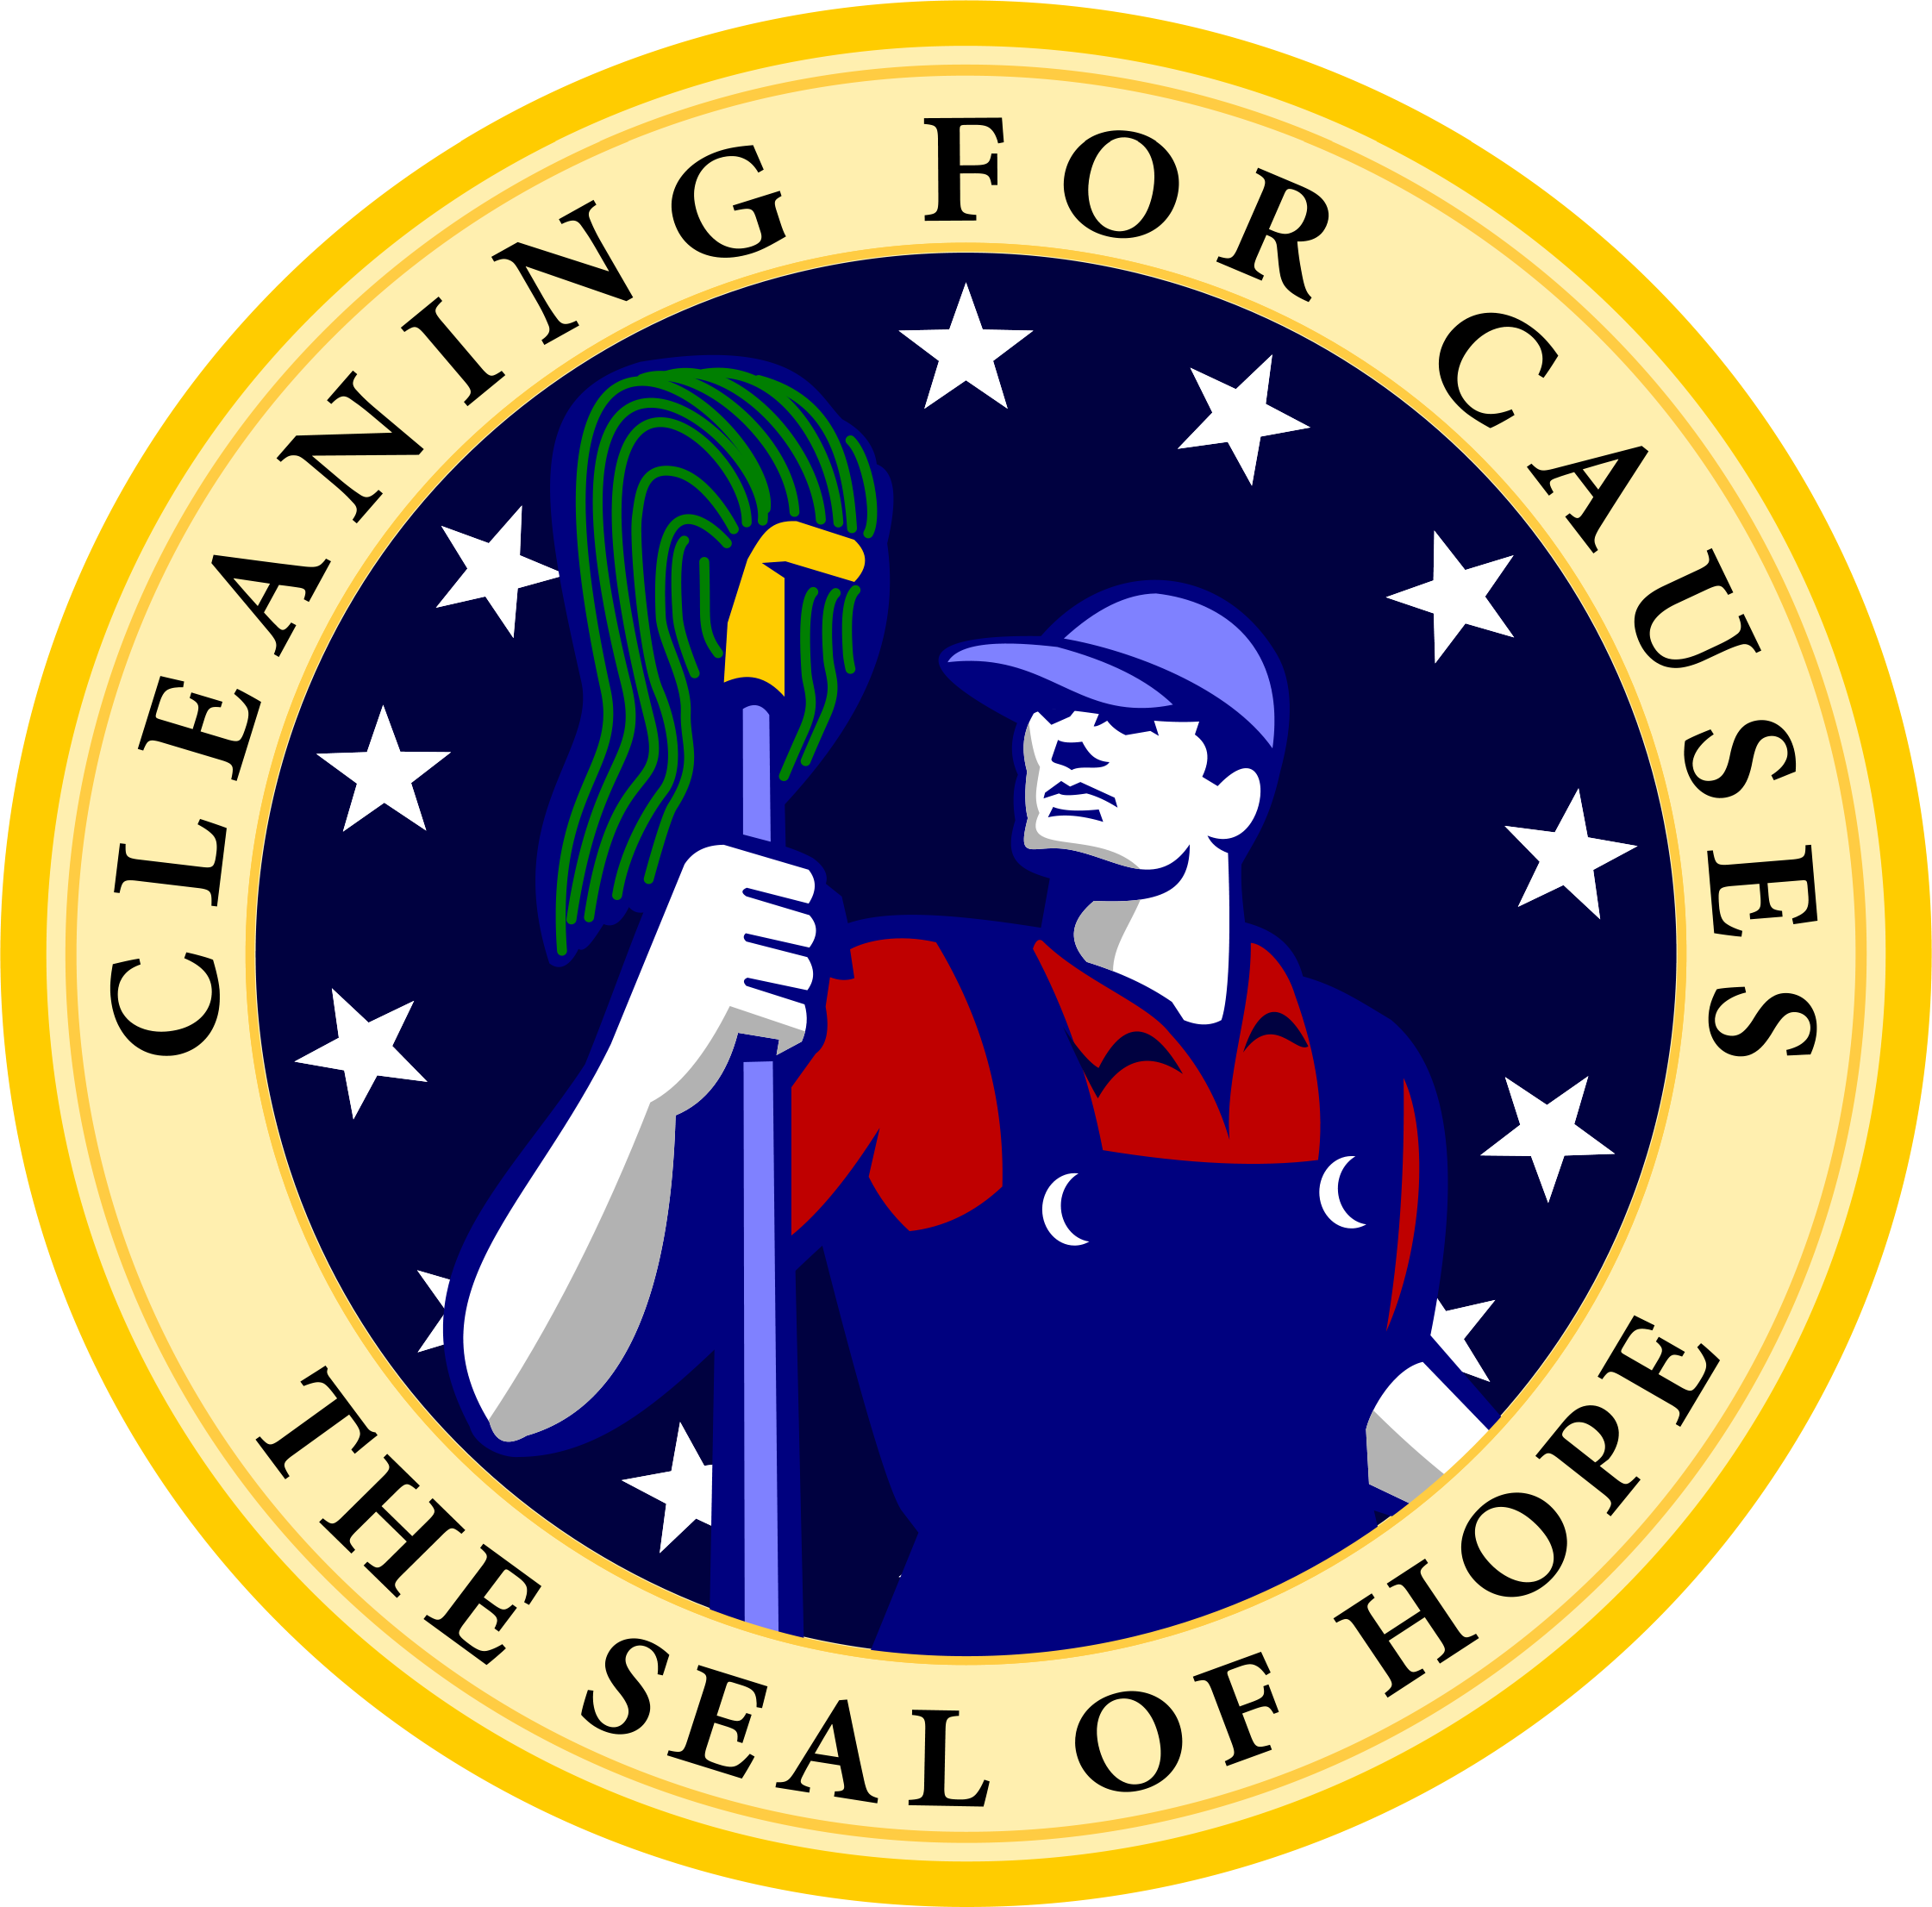 Employee clipart testimonial. Cleaning for causes a